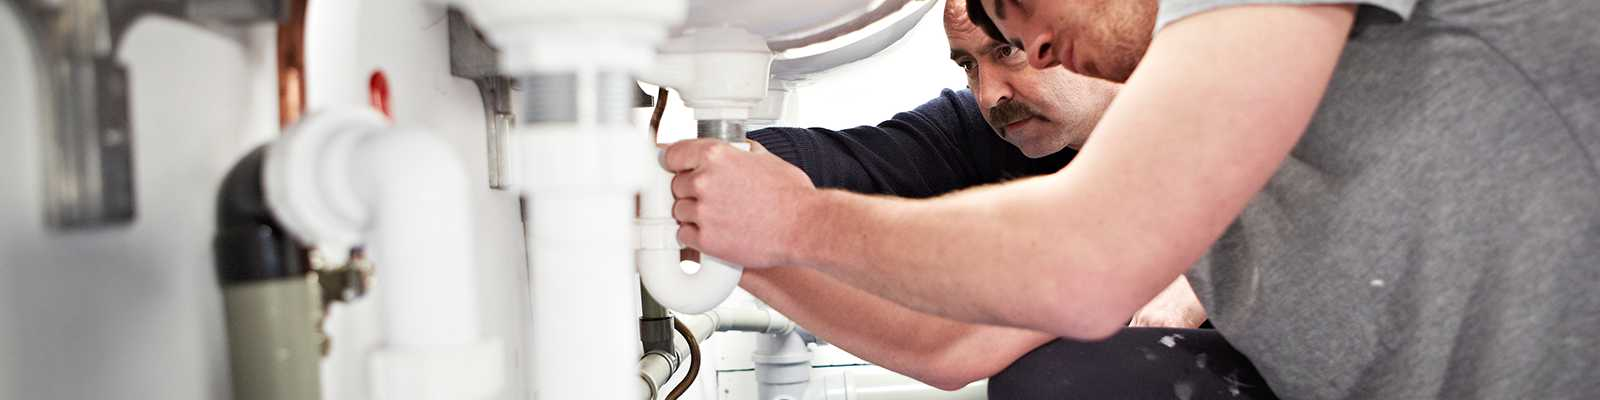 Commercial Plumbing Everything You Need To Know Greater Nt